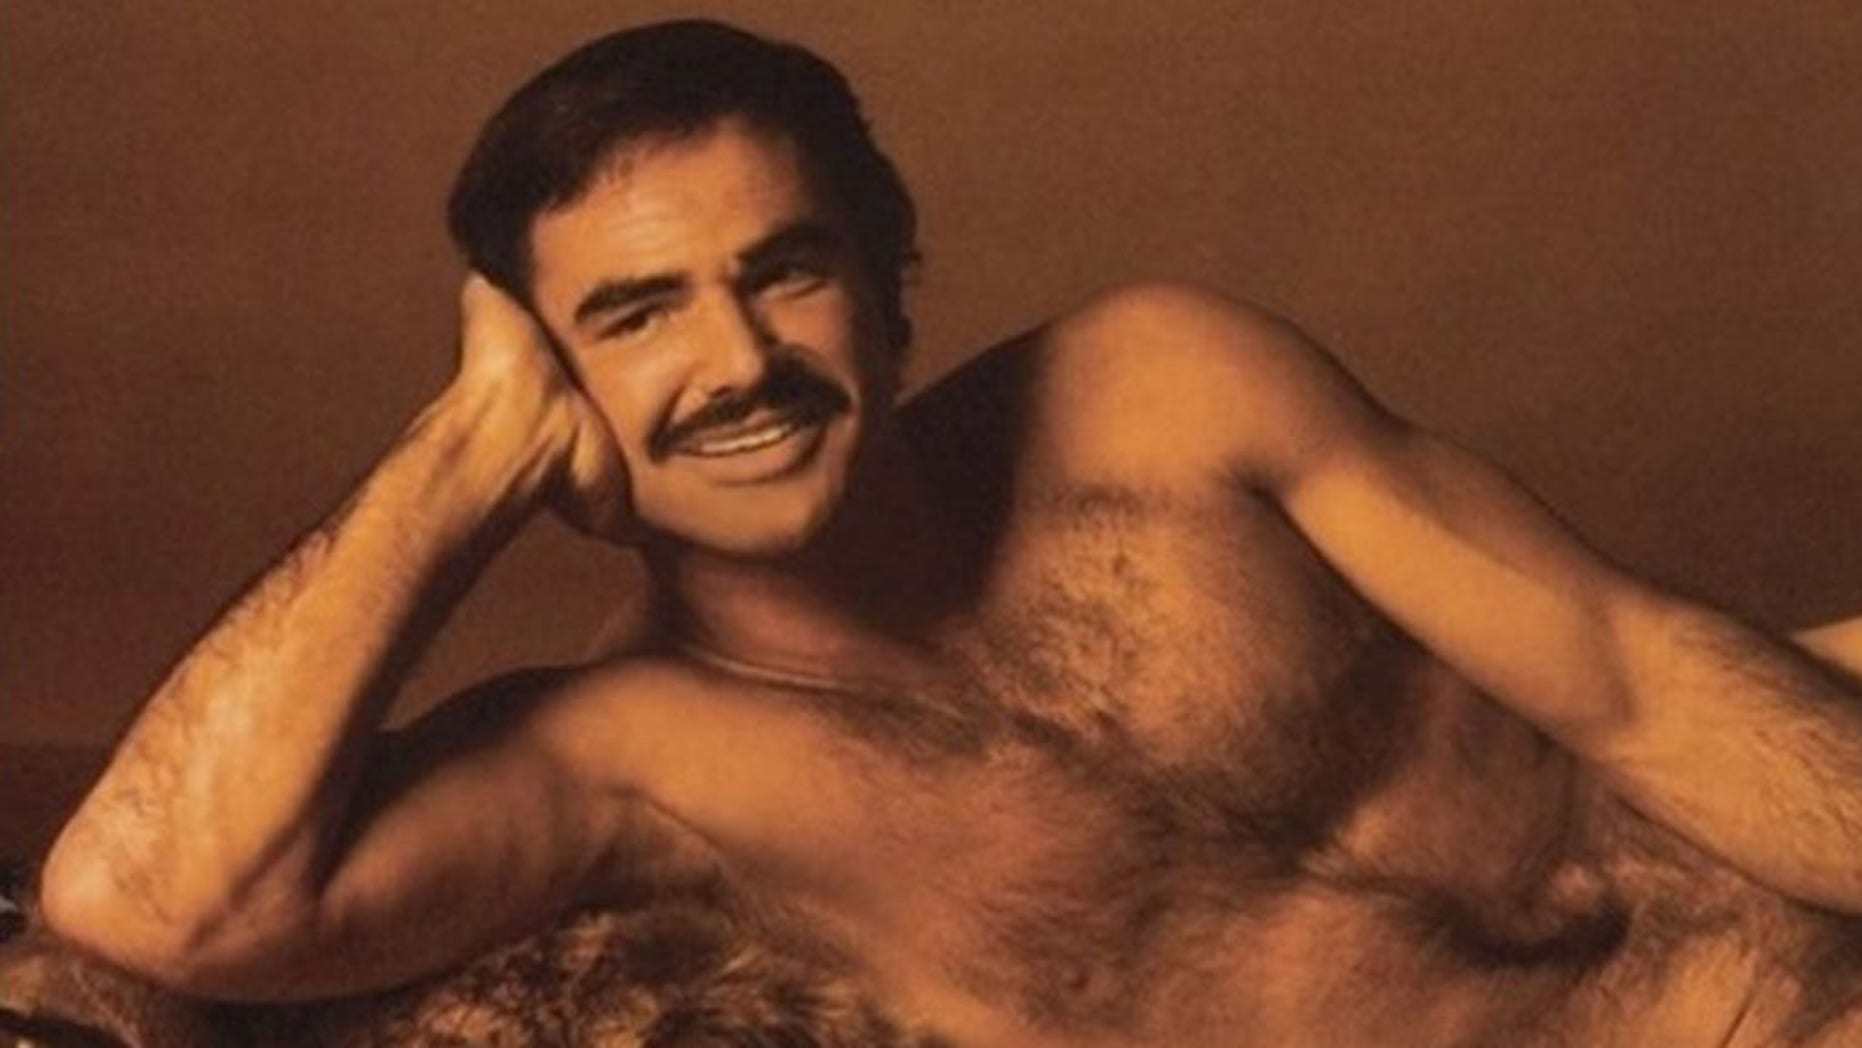 Facebook apologized on Friday for removing a Cosmopolitan photo of the late Burt Reynolds on its platform.